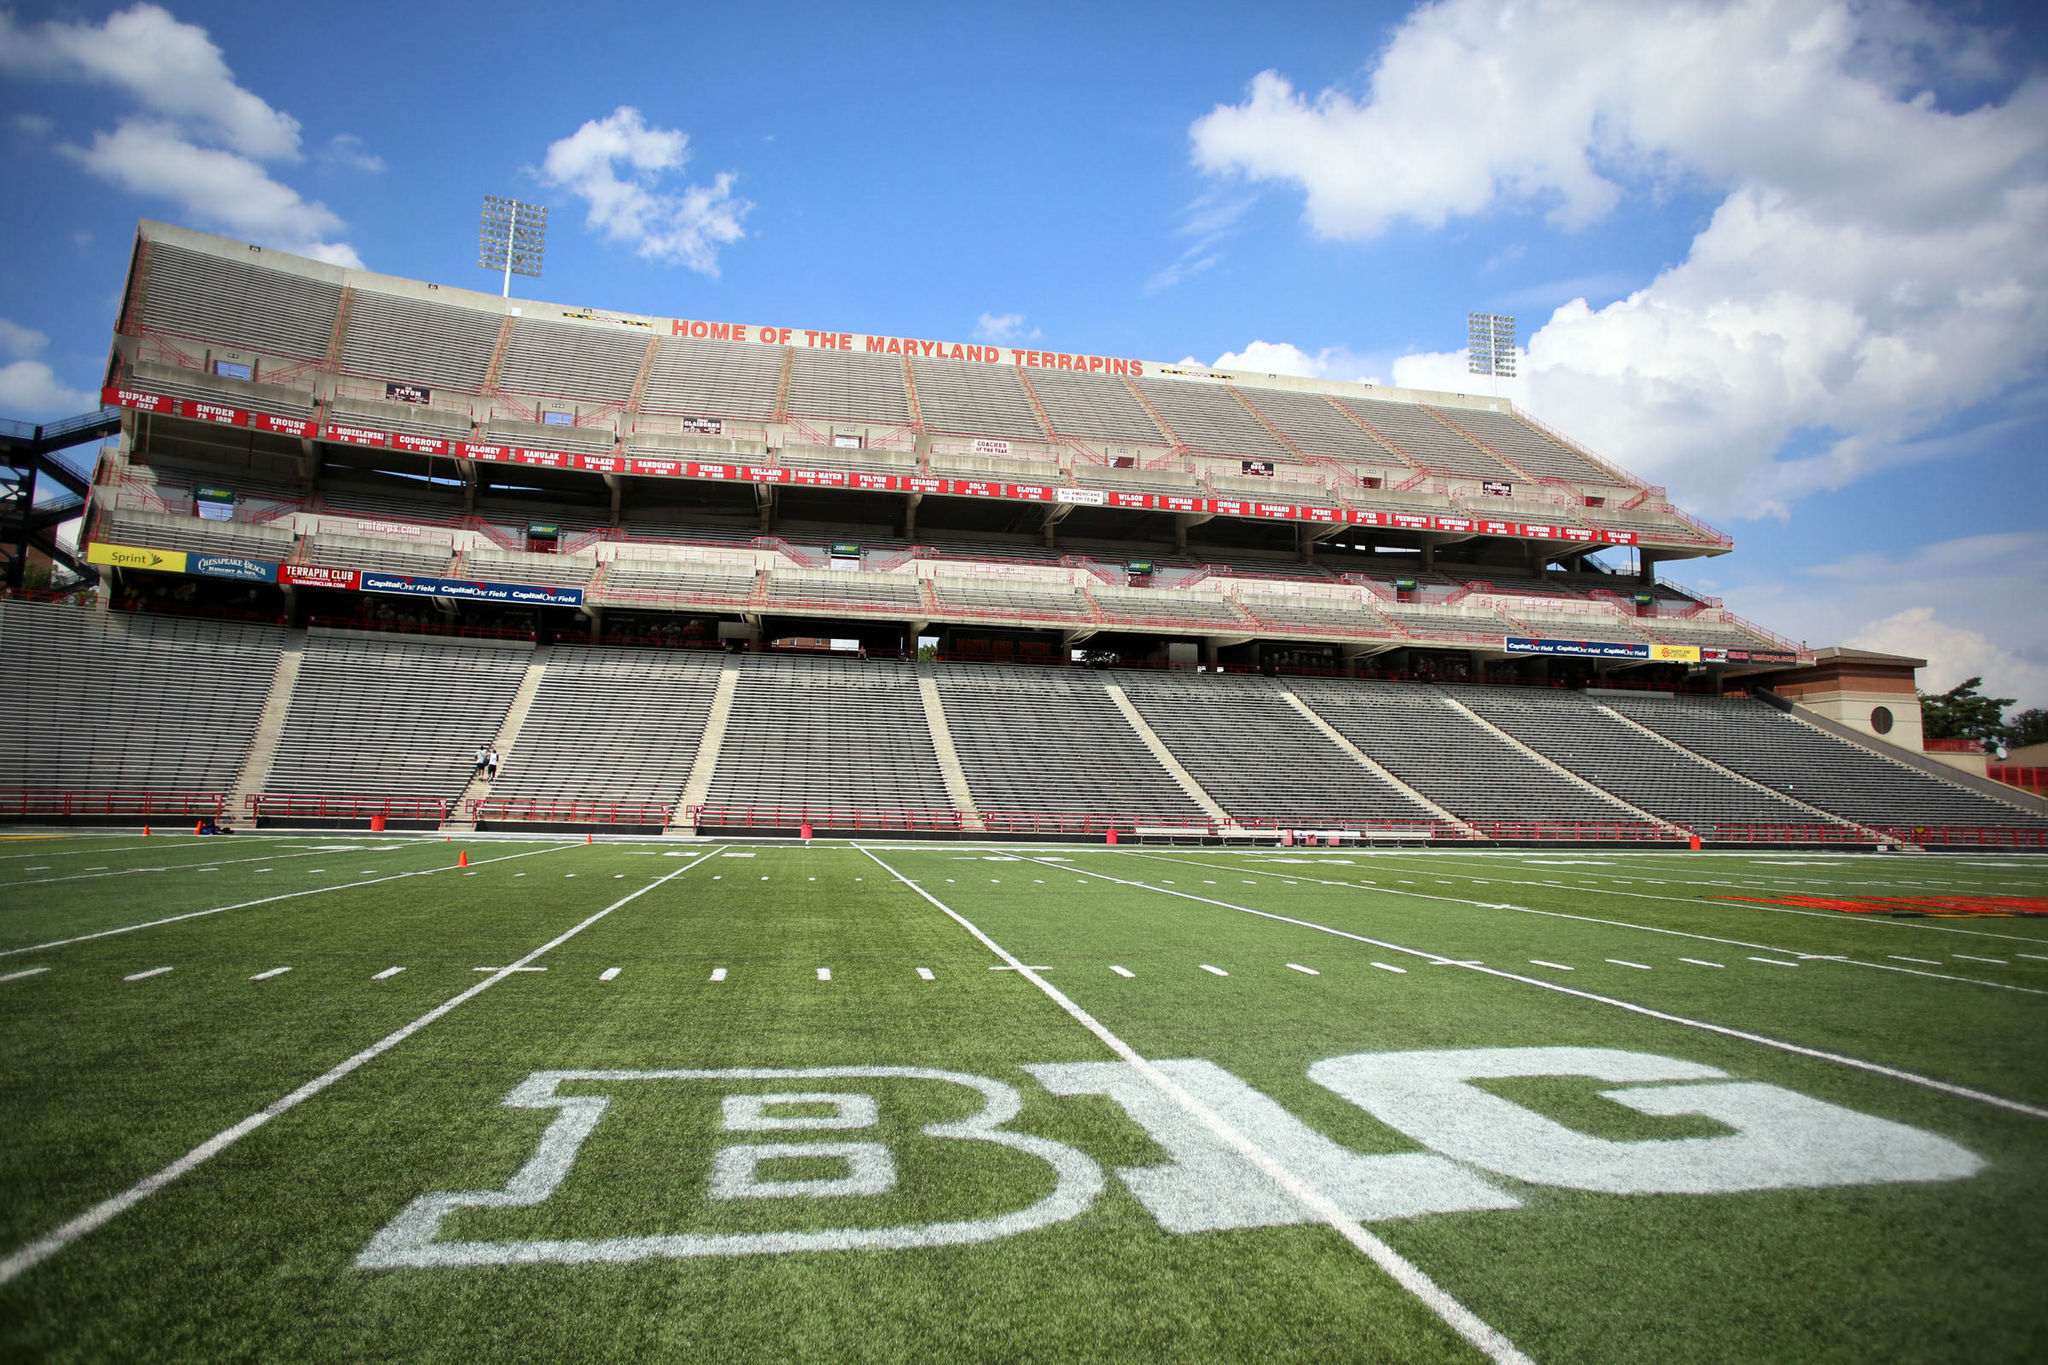 The University Of Maryland Approves Beer Sales At Sporting Events